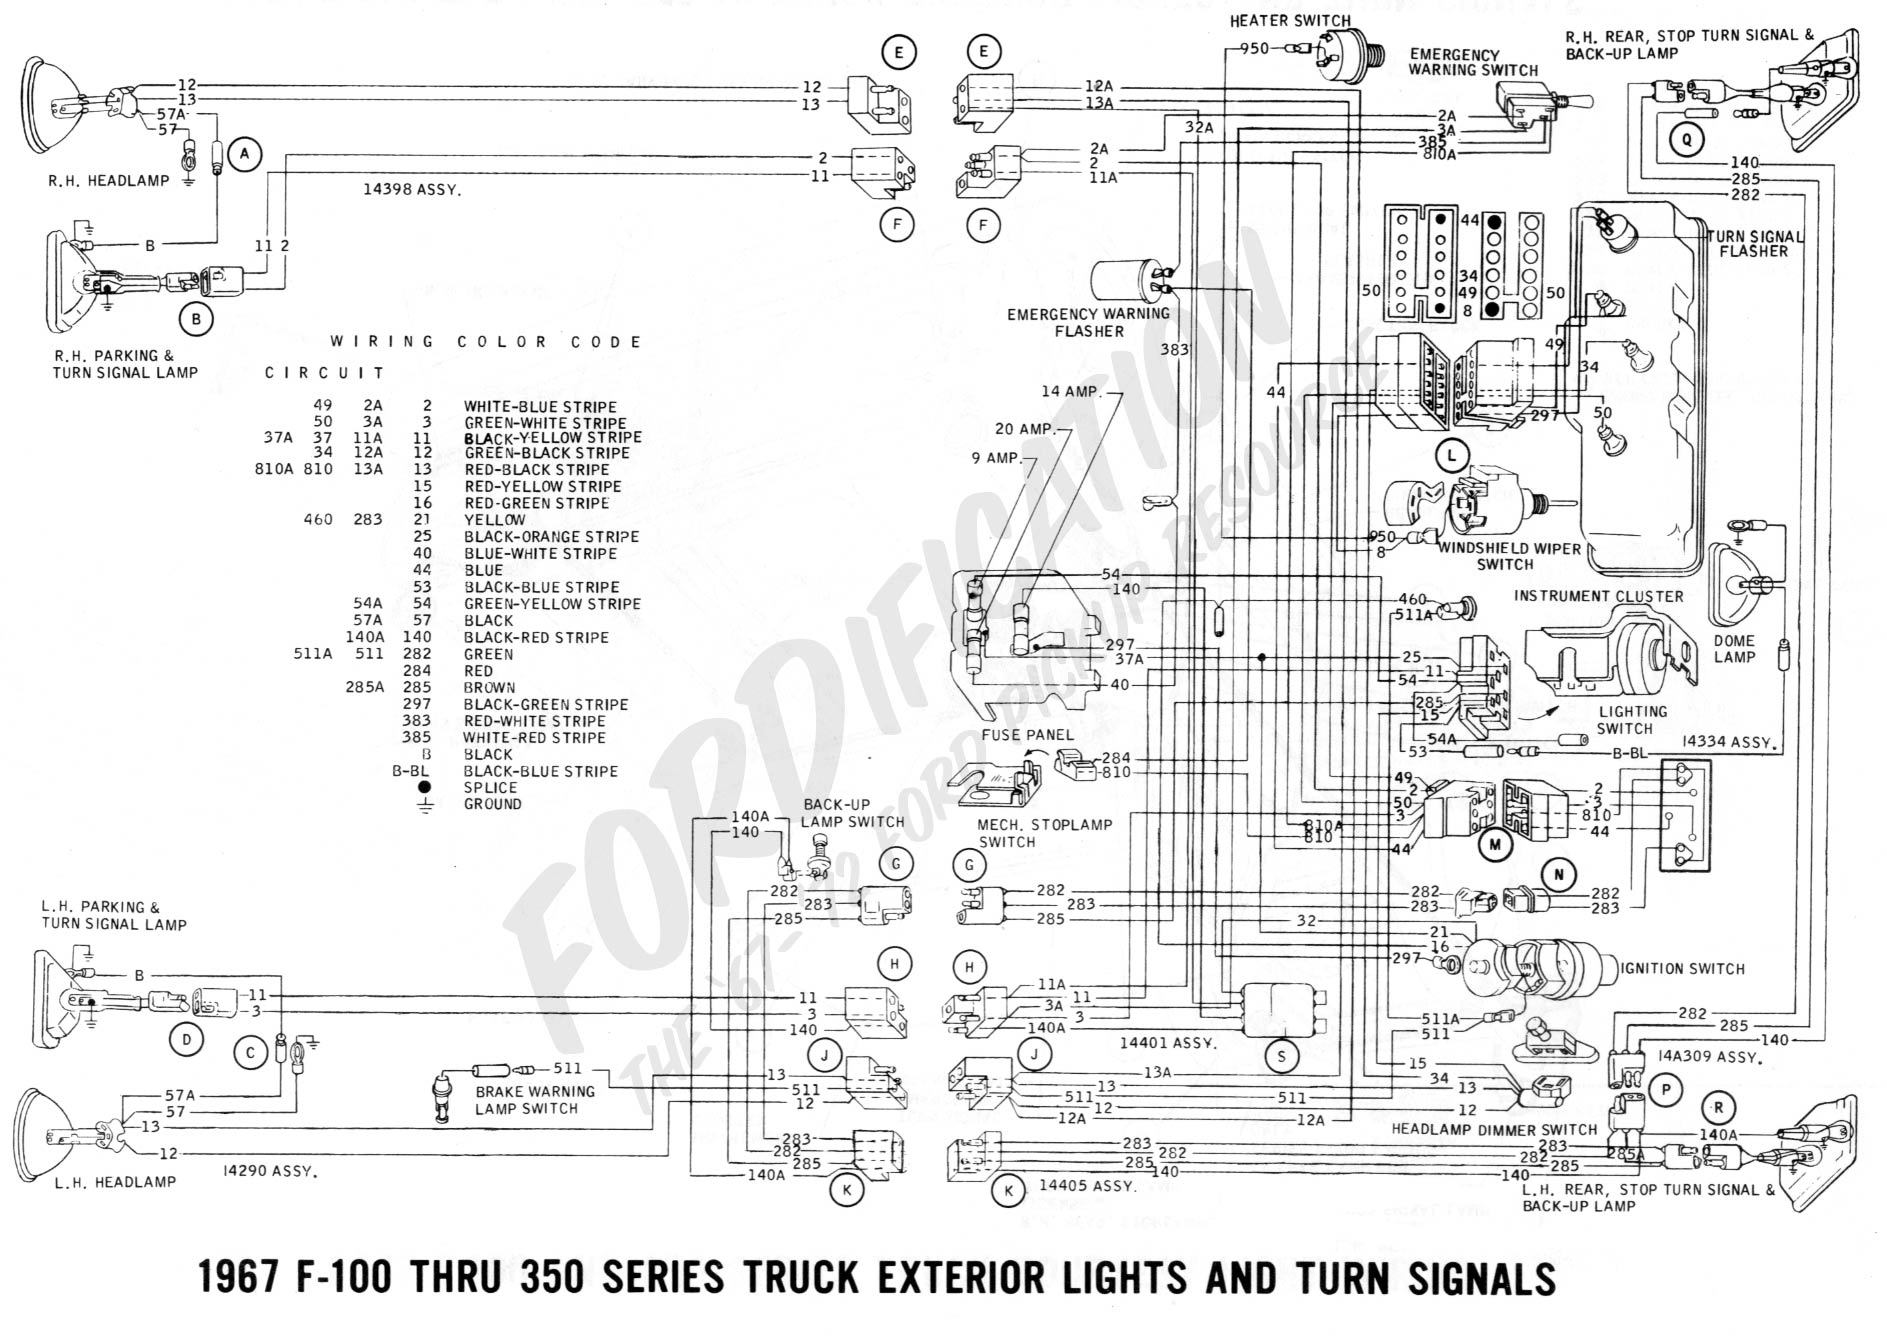 80 1967_exterior_lights_and_turn_signals_page_2_1db6c529c4c9567560e56d6320f993290ba5b803 1967 mustang wiring diagram efcaviation com 66 mustang wiring diagram at nearapp.co